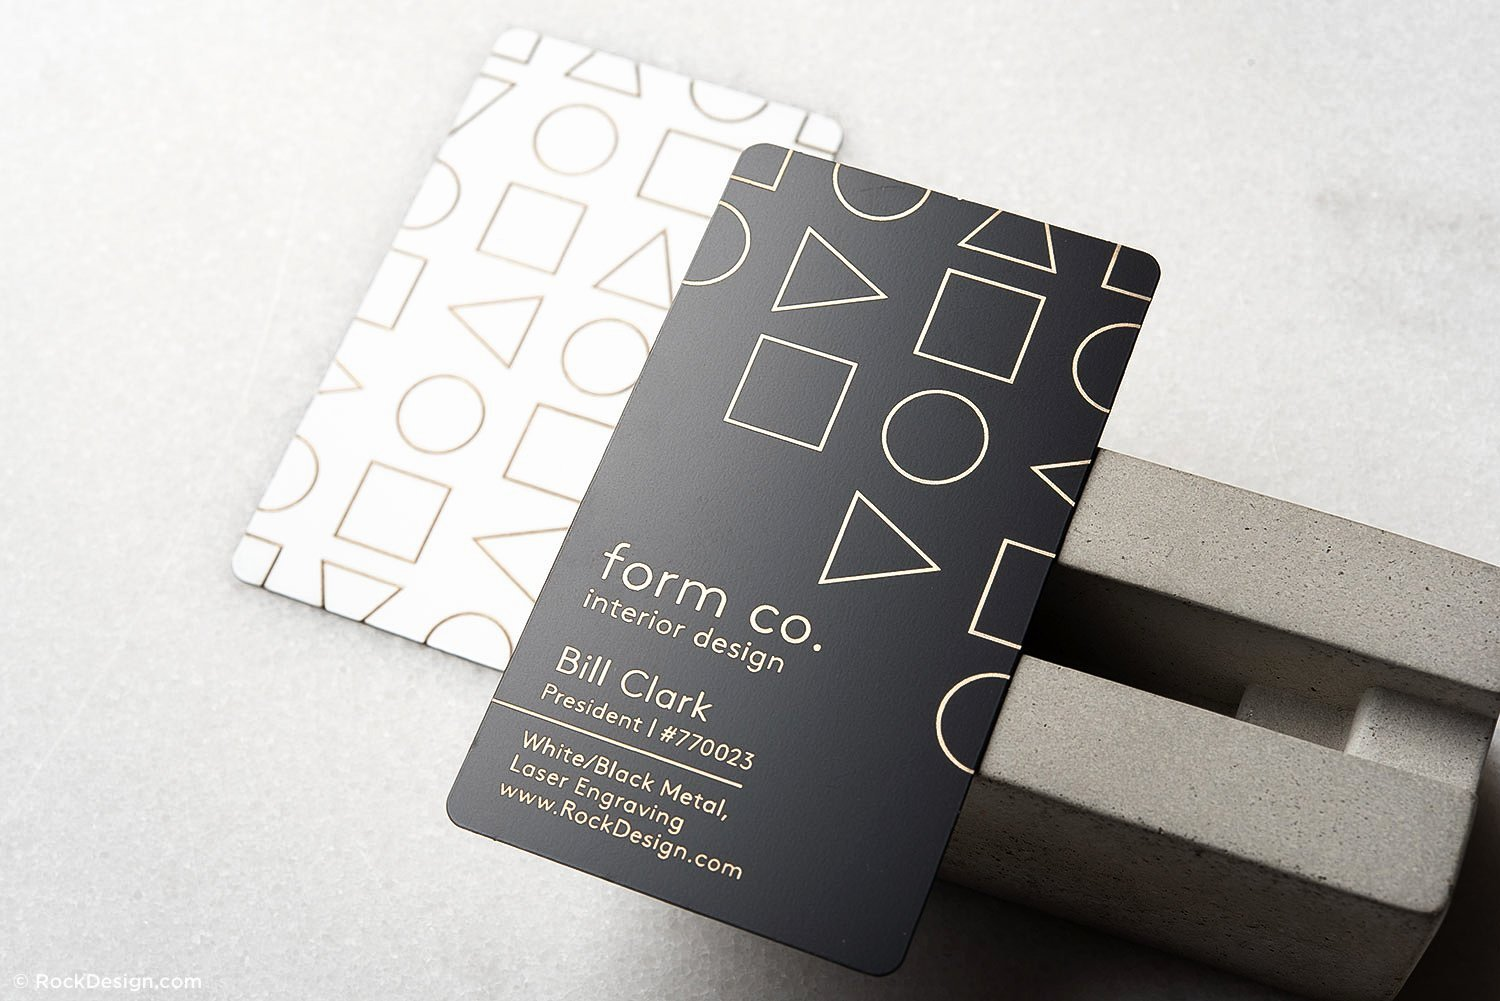 Interior Design Business Cards Fresh Simple and Clean Interior Design Quick Metal Business Card